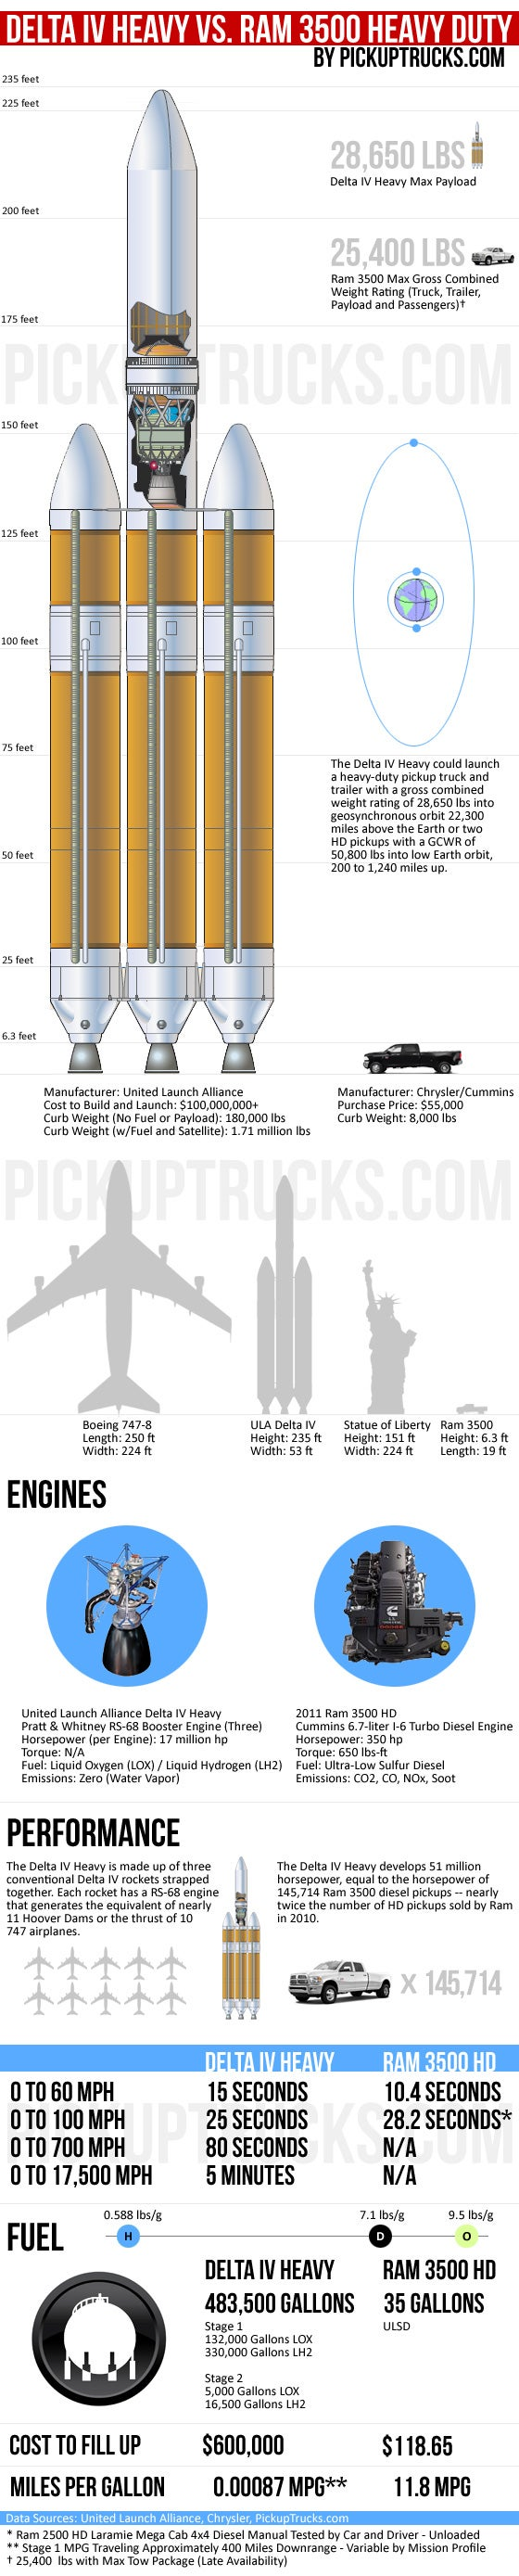 How the Strongest US Rocket Compares to a Heavy Duty Pickup Truck